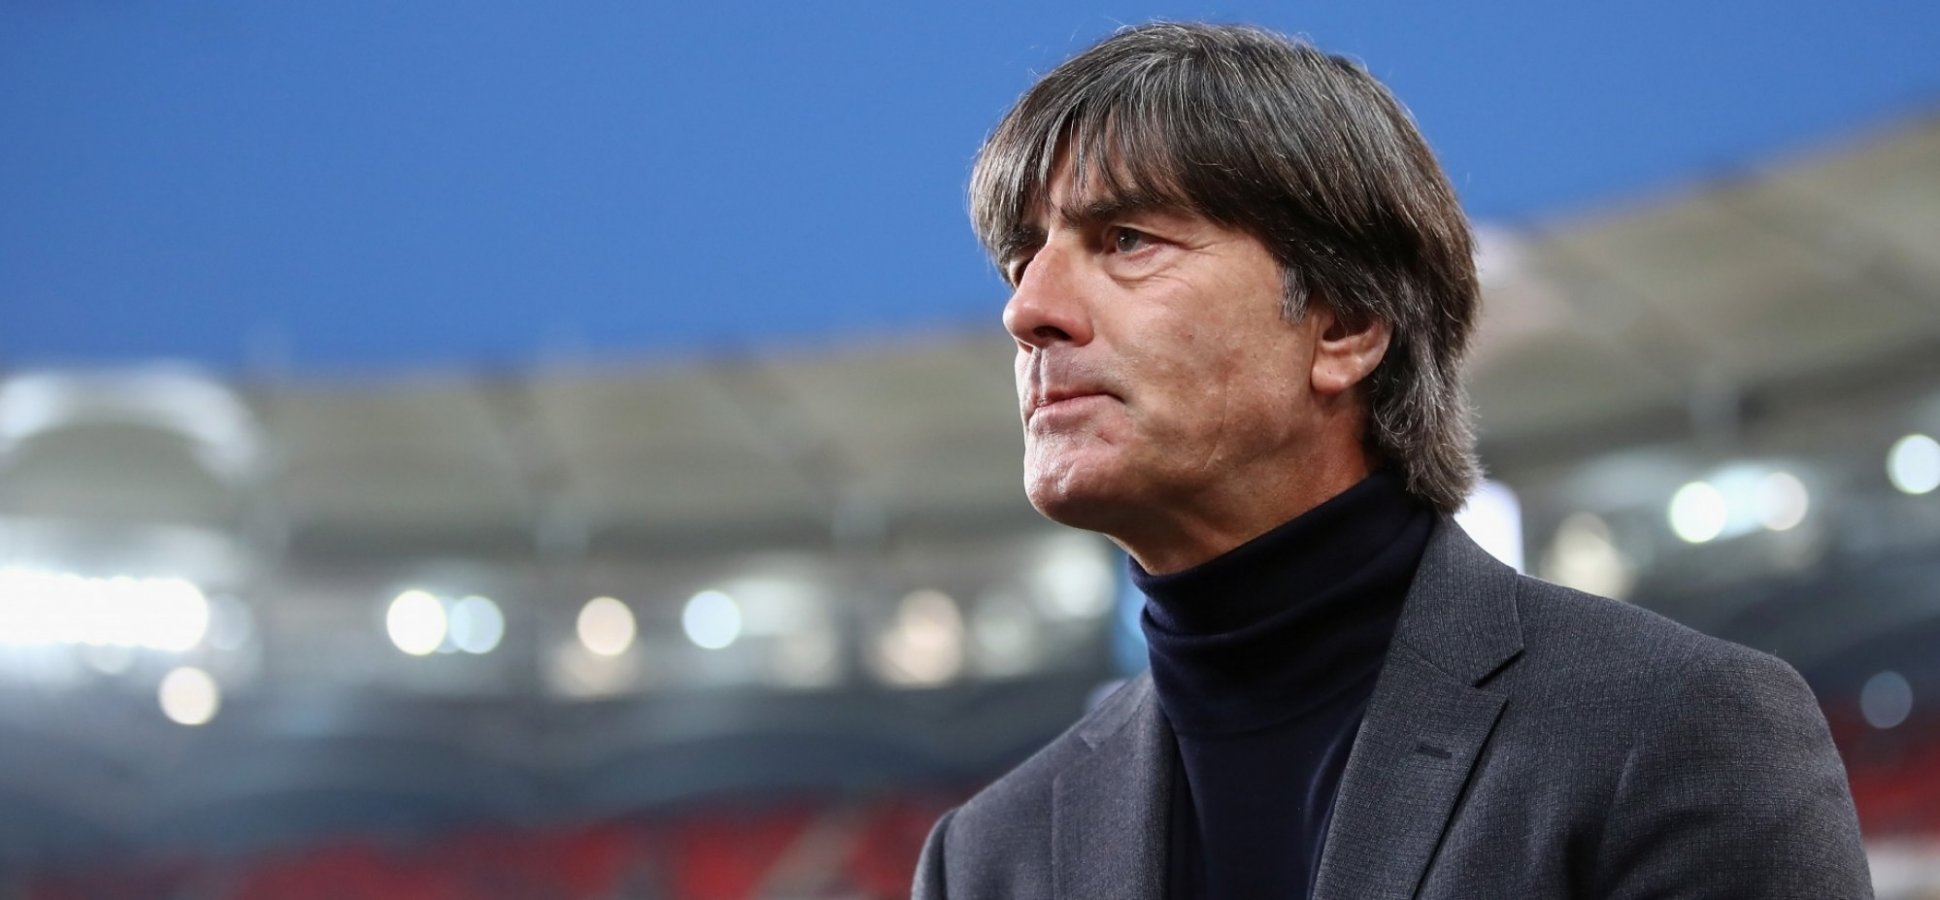 How to Give Motivating Pep Talks Like Germany's World Cup-Winning Coach Joachim Low